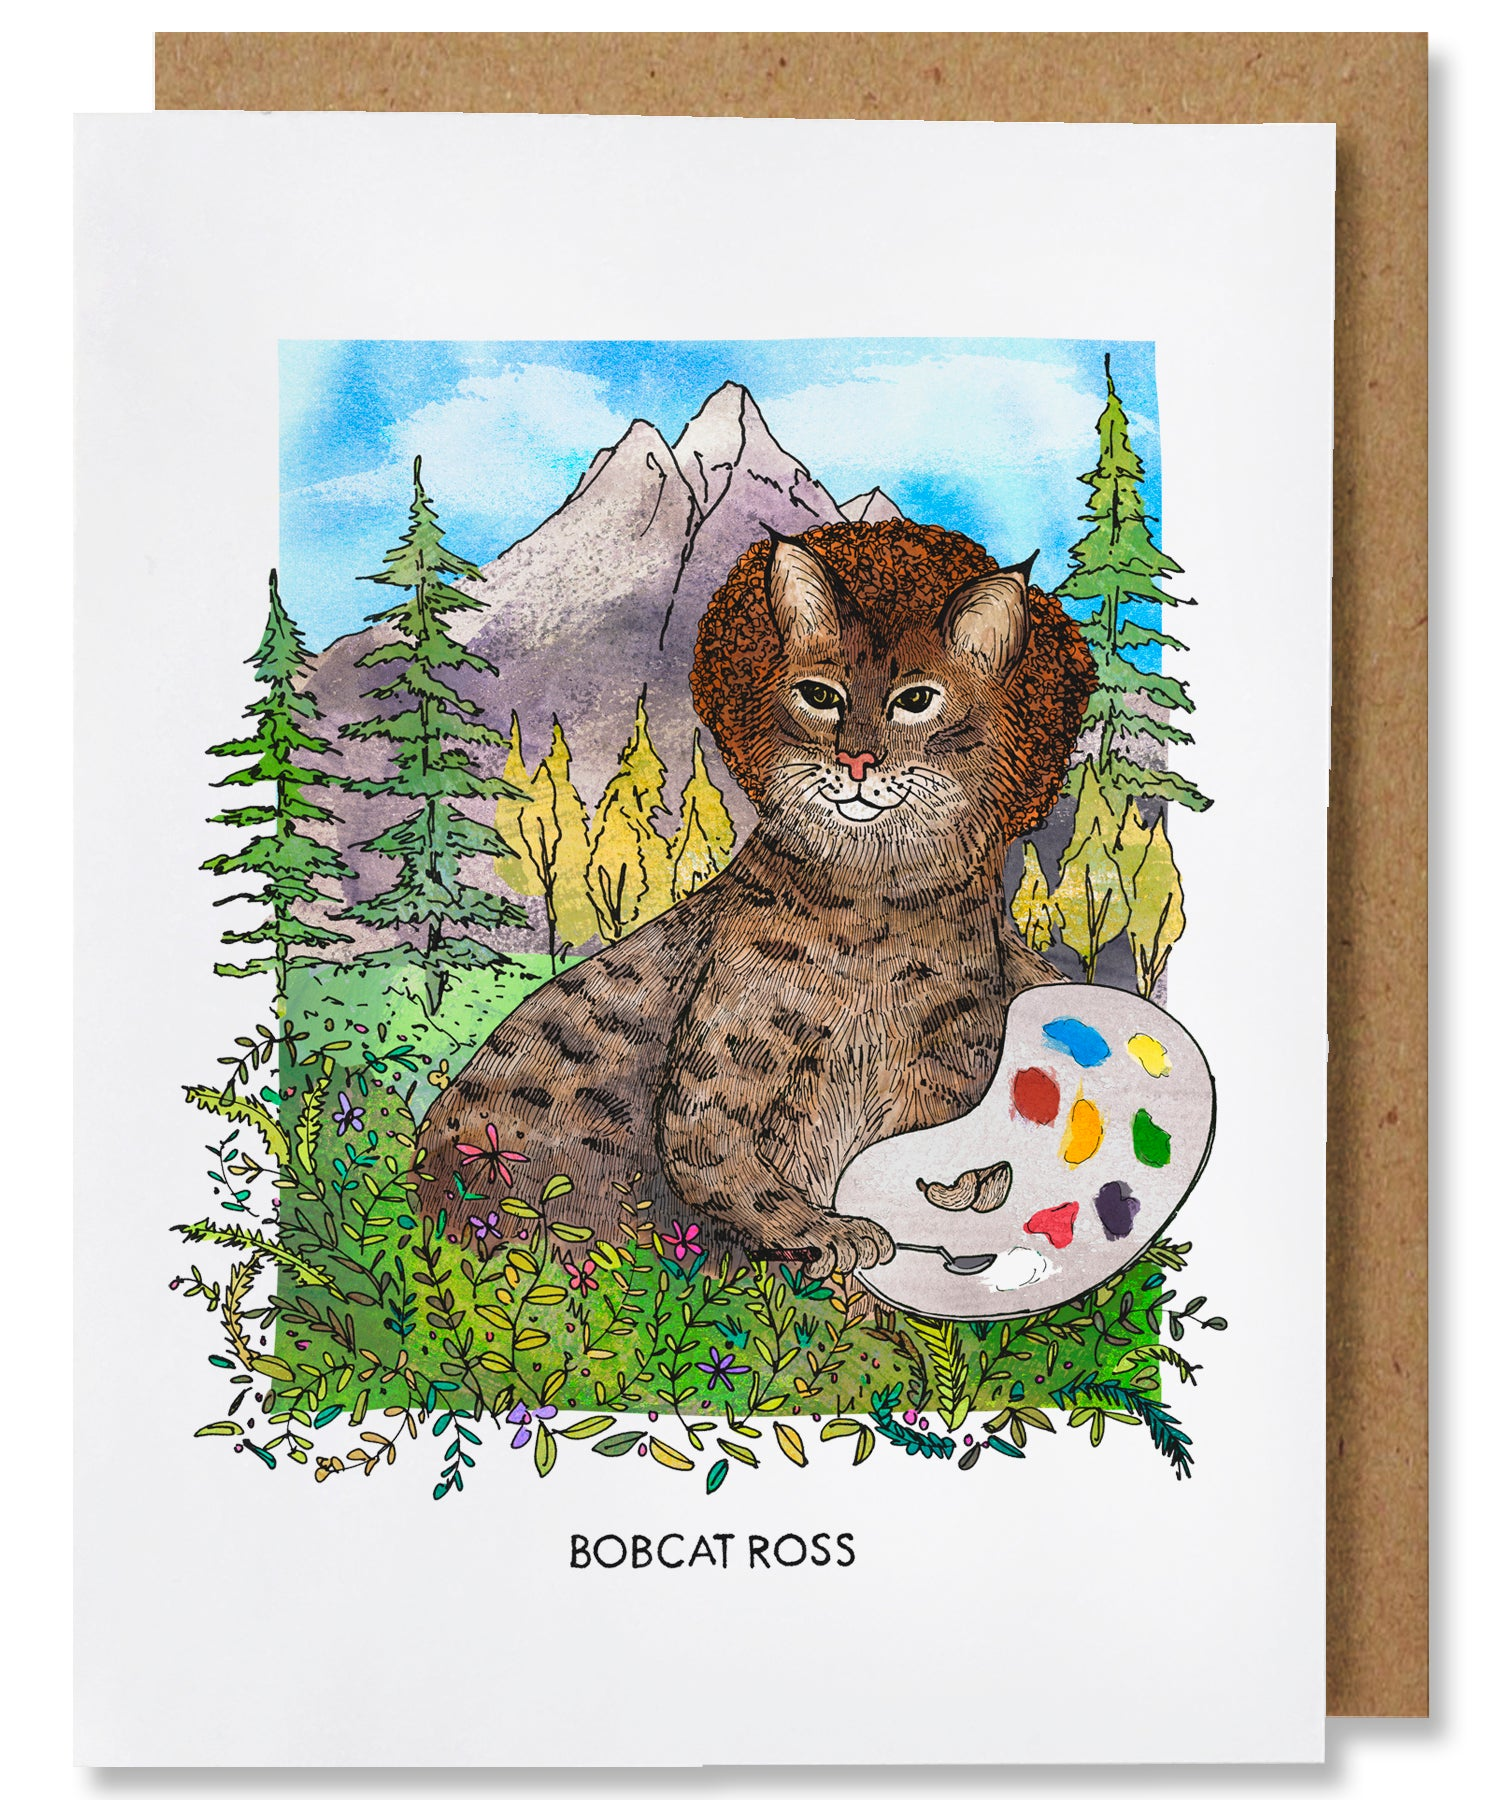 Bobcat Ross Greeting Card - Heart of the Home PA